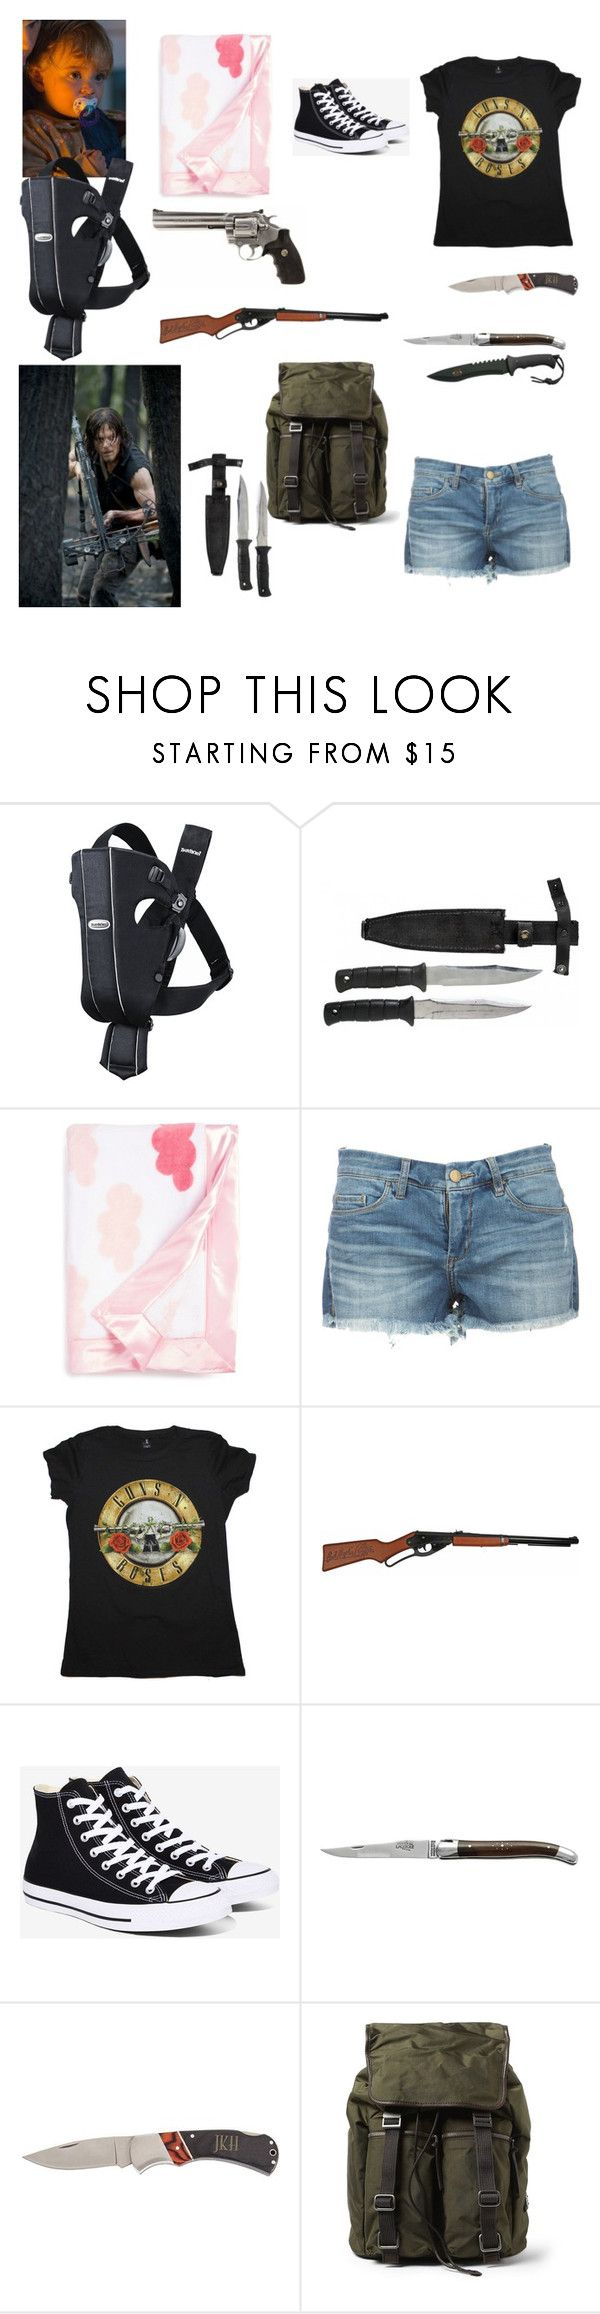 """After The Fall"" by wwe-twd ❤ liked on Polyvore featuring Episode, BabyBjörn, Nordstrom, Converse, Forge de Laguiole, Home Decorators Collection and Dolce&Gabbana"